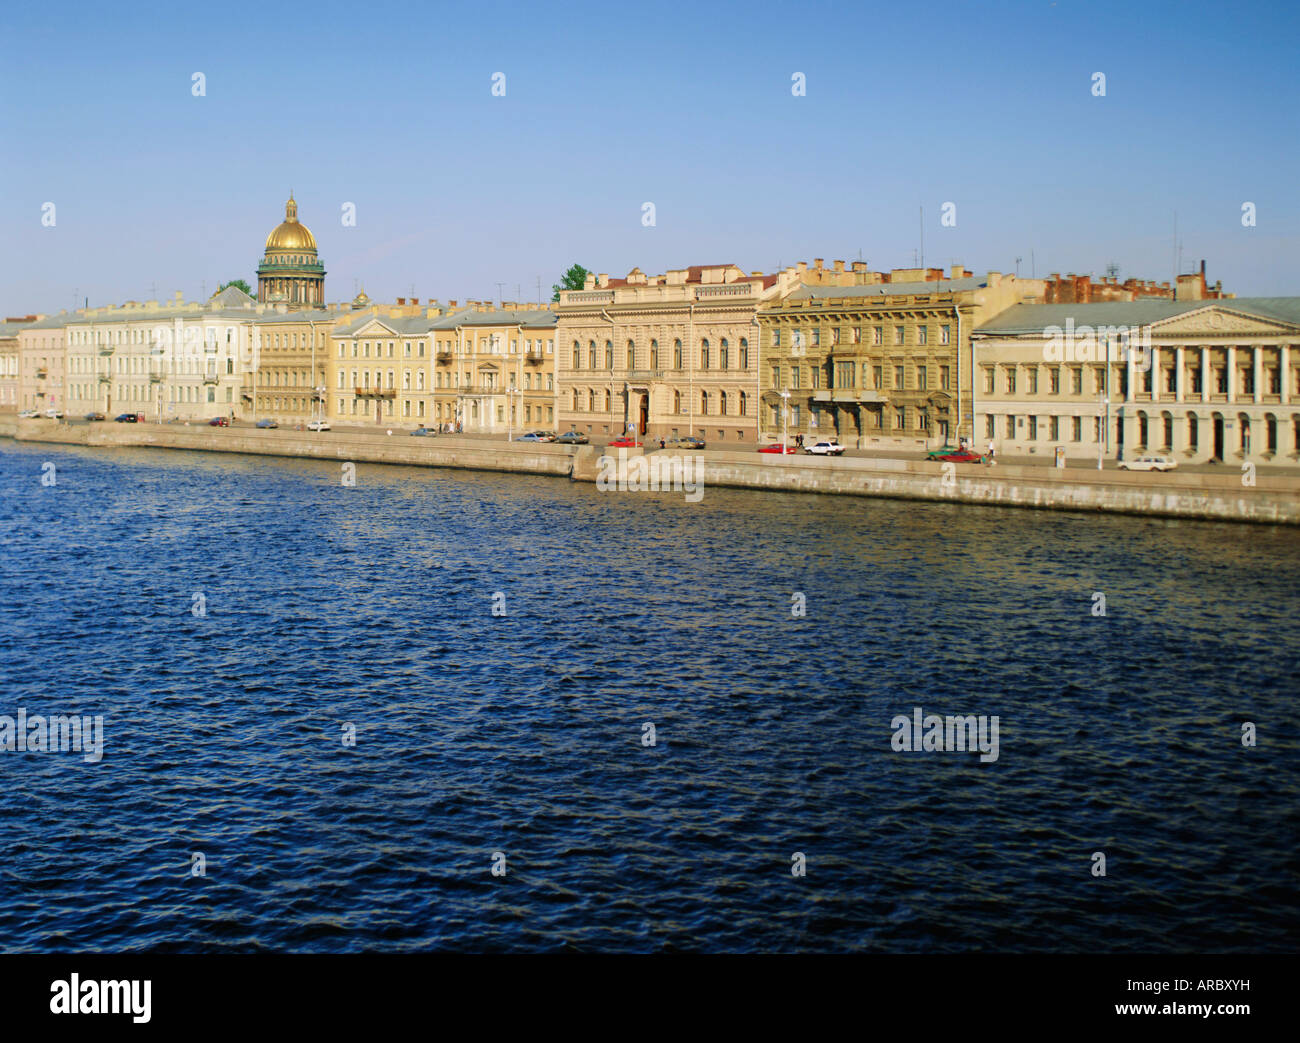 Neva River, English Quay and skyline, St. Petersburg, Russia, Europe - Stock Image